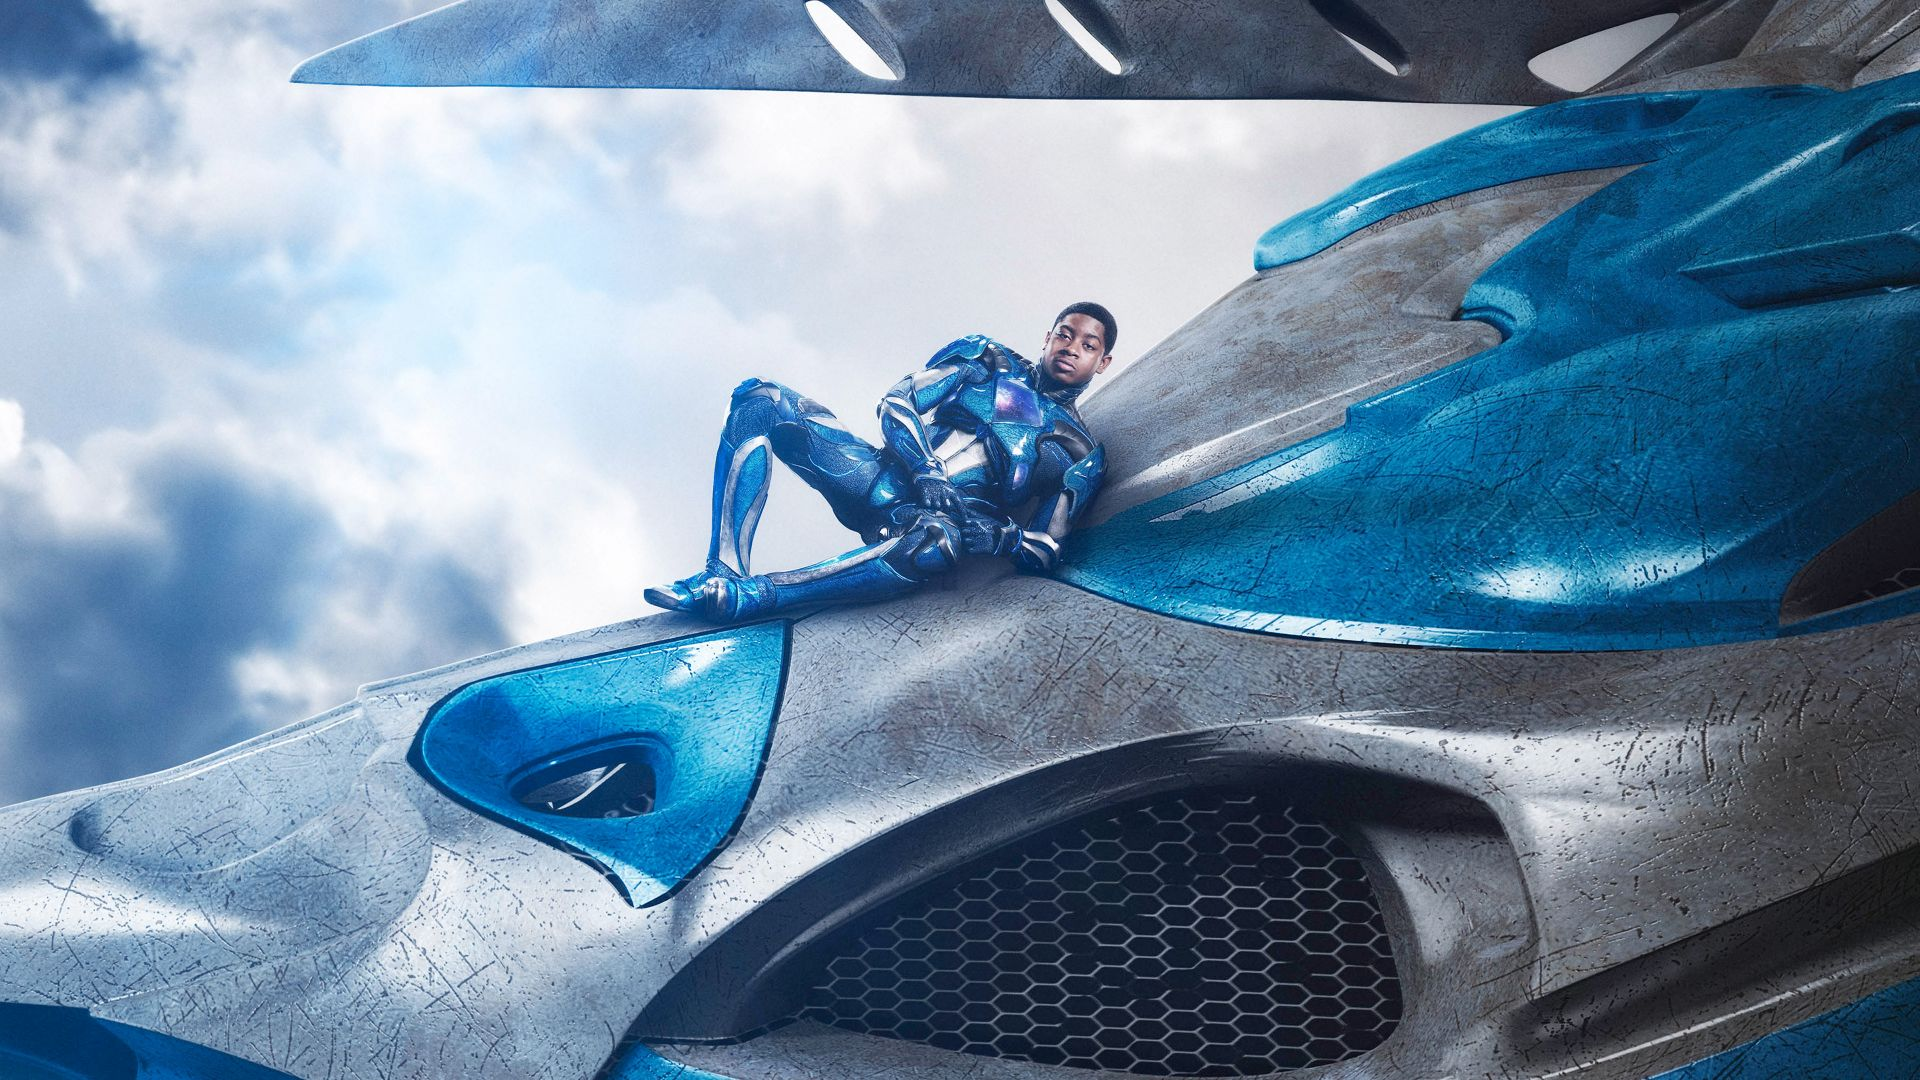 Power Rangers, blue, RJ Cyler, superhero (horizontal)